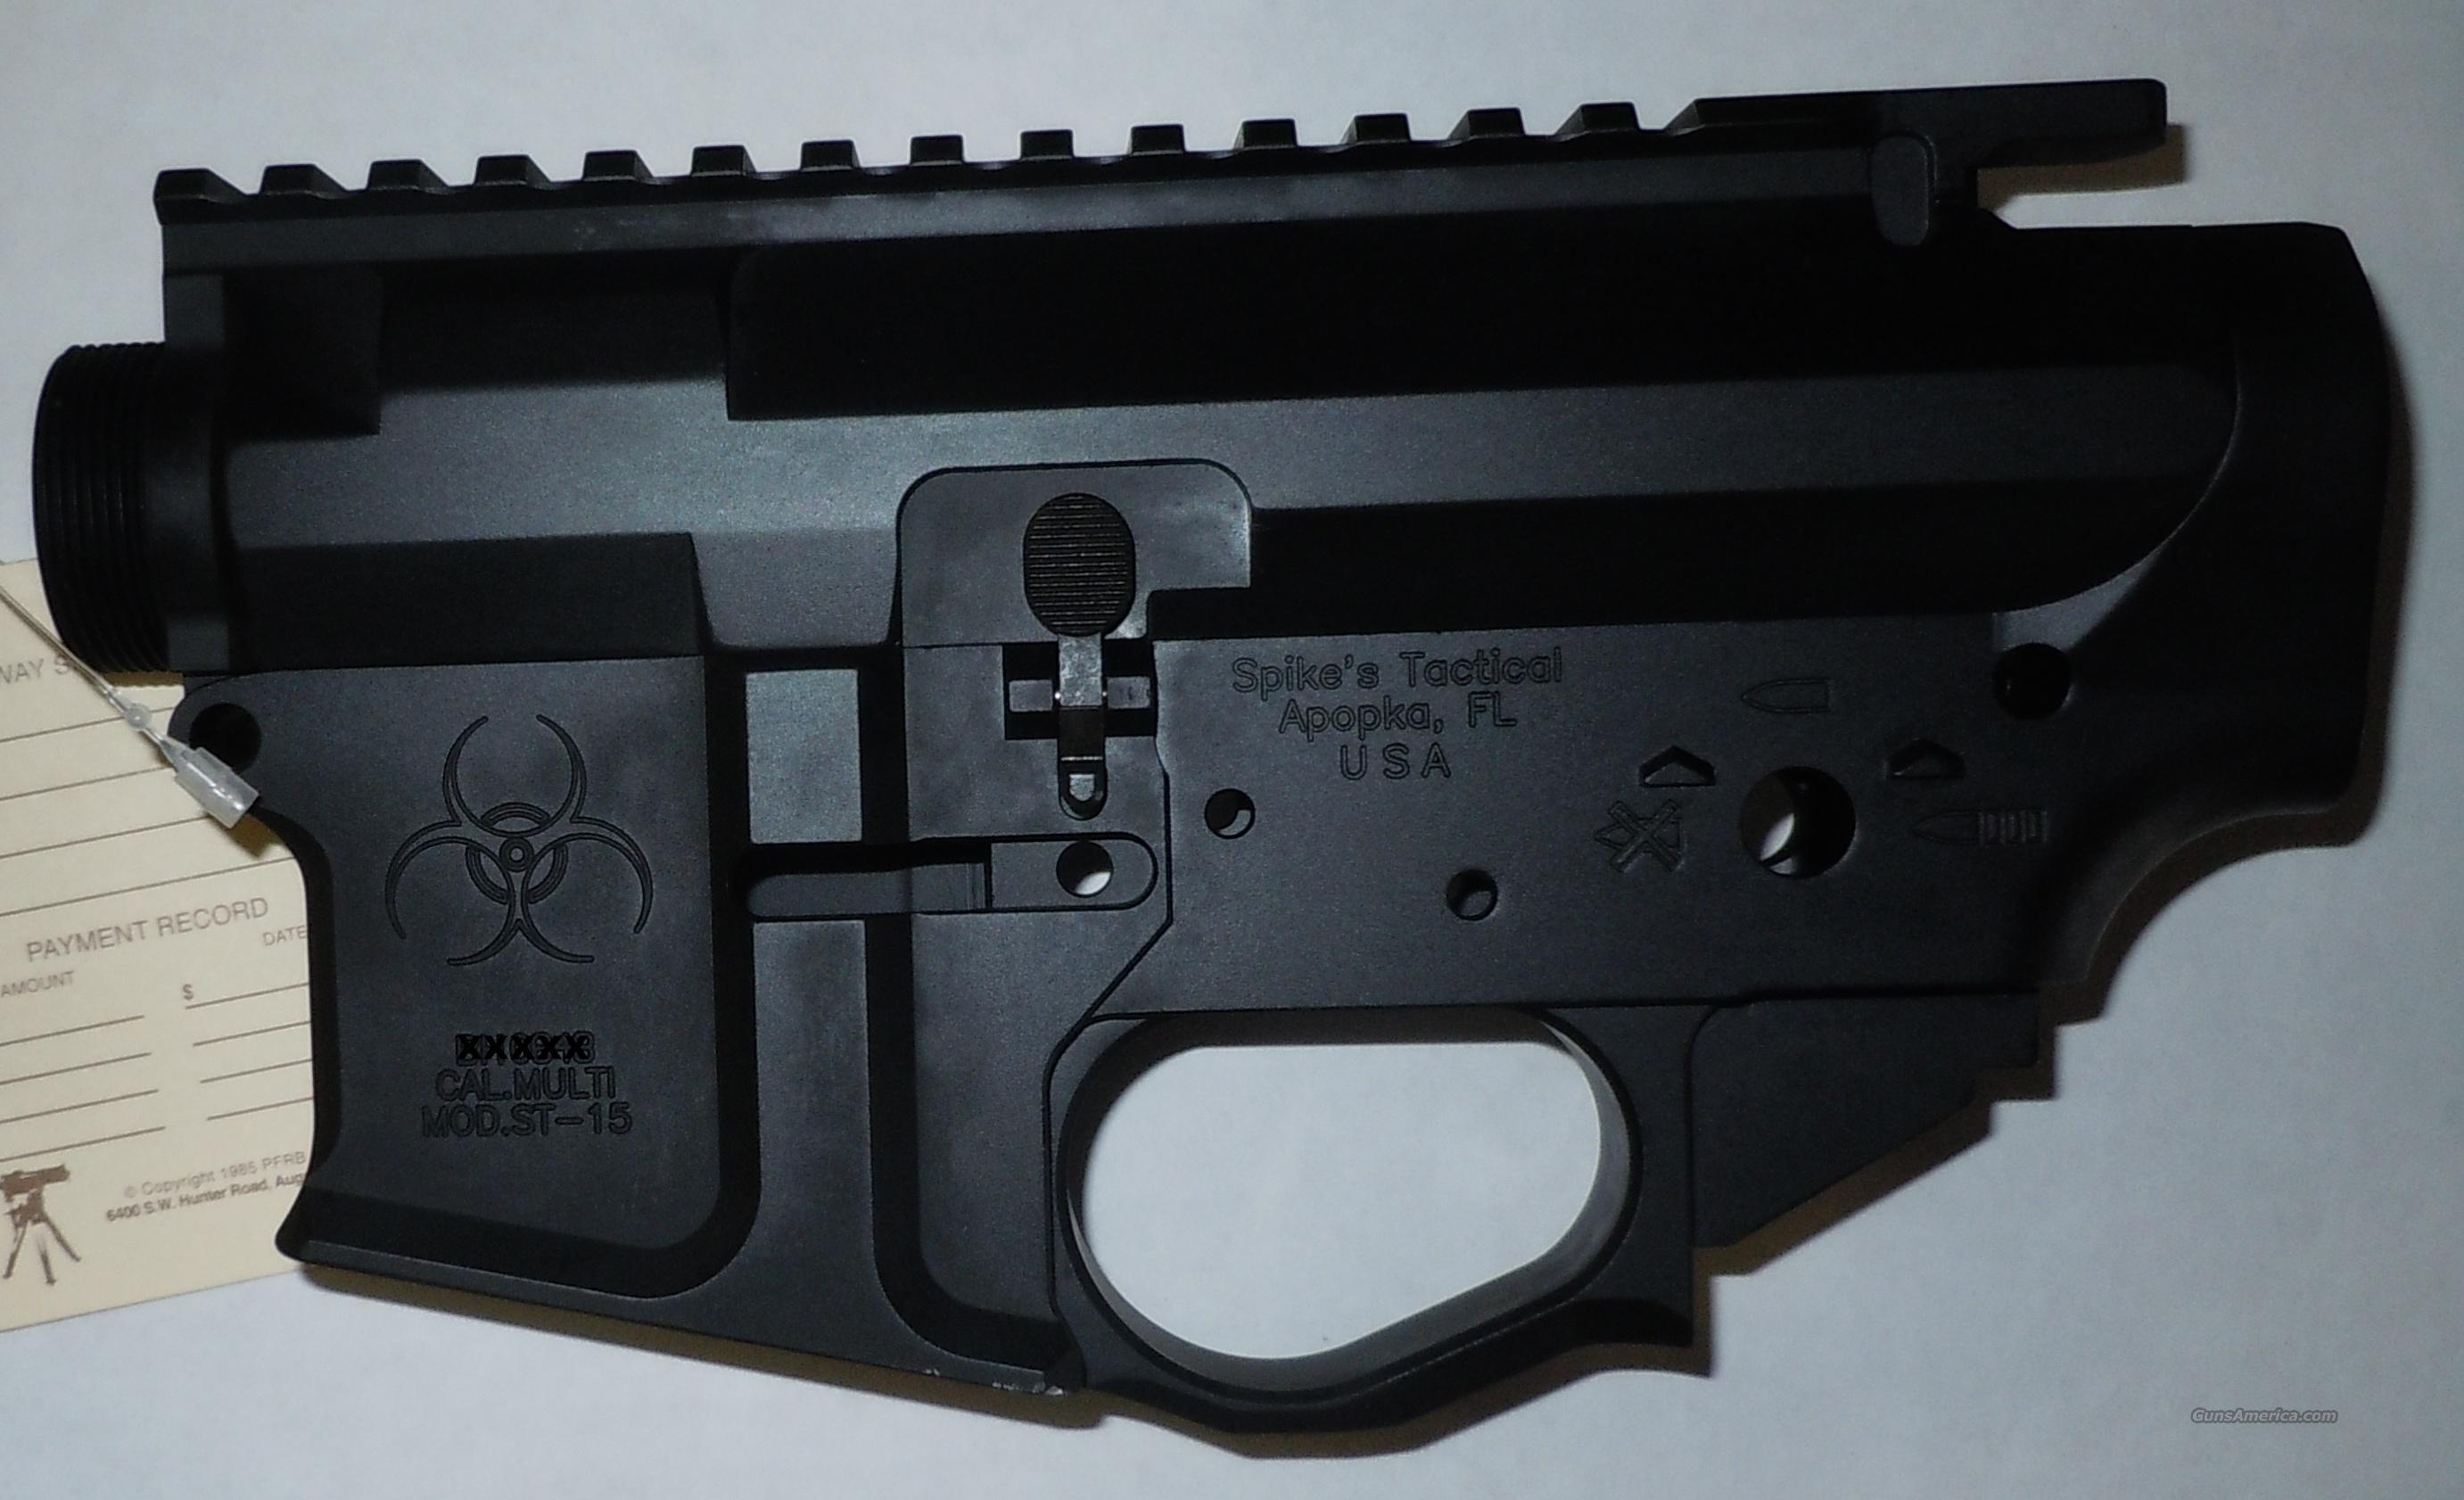 SPIKE'S TACTICAL BIOHAZARD MILLED AND MATCHED AR STRIPPED LOWER AND UPPER RECEIVERS  Guns > Rifles > AR-15 Rifles - Small Manufacturers > Lower Only